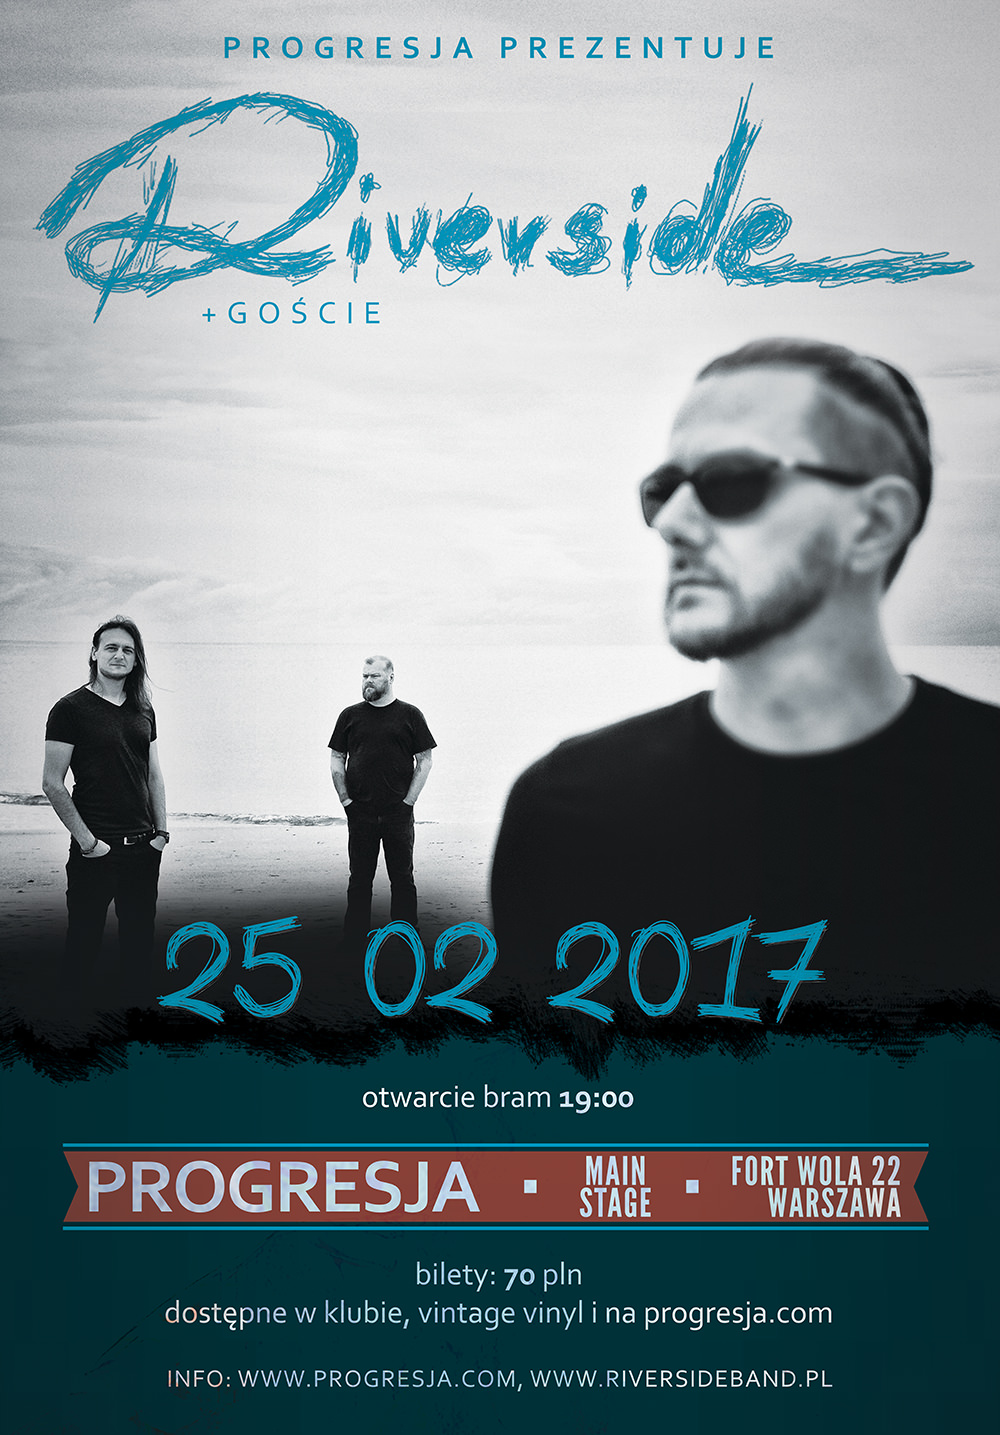 February 25th - Progresja - concert